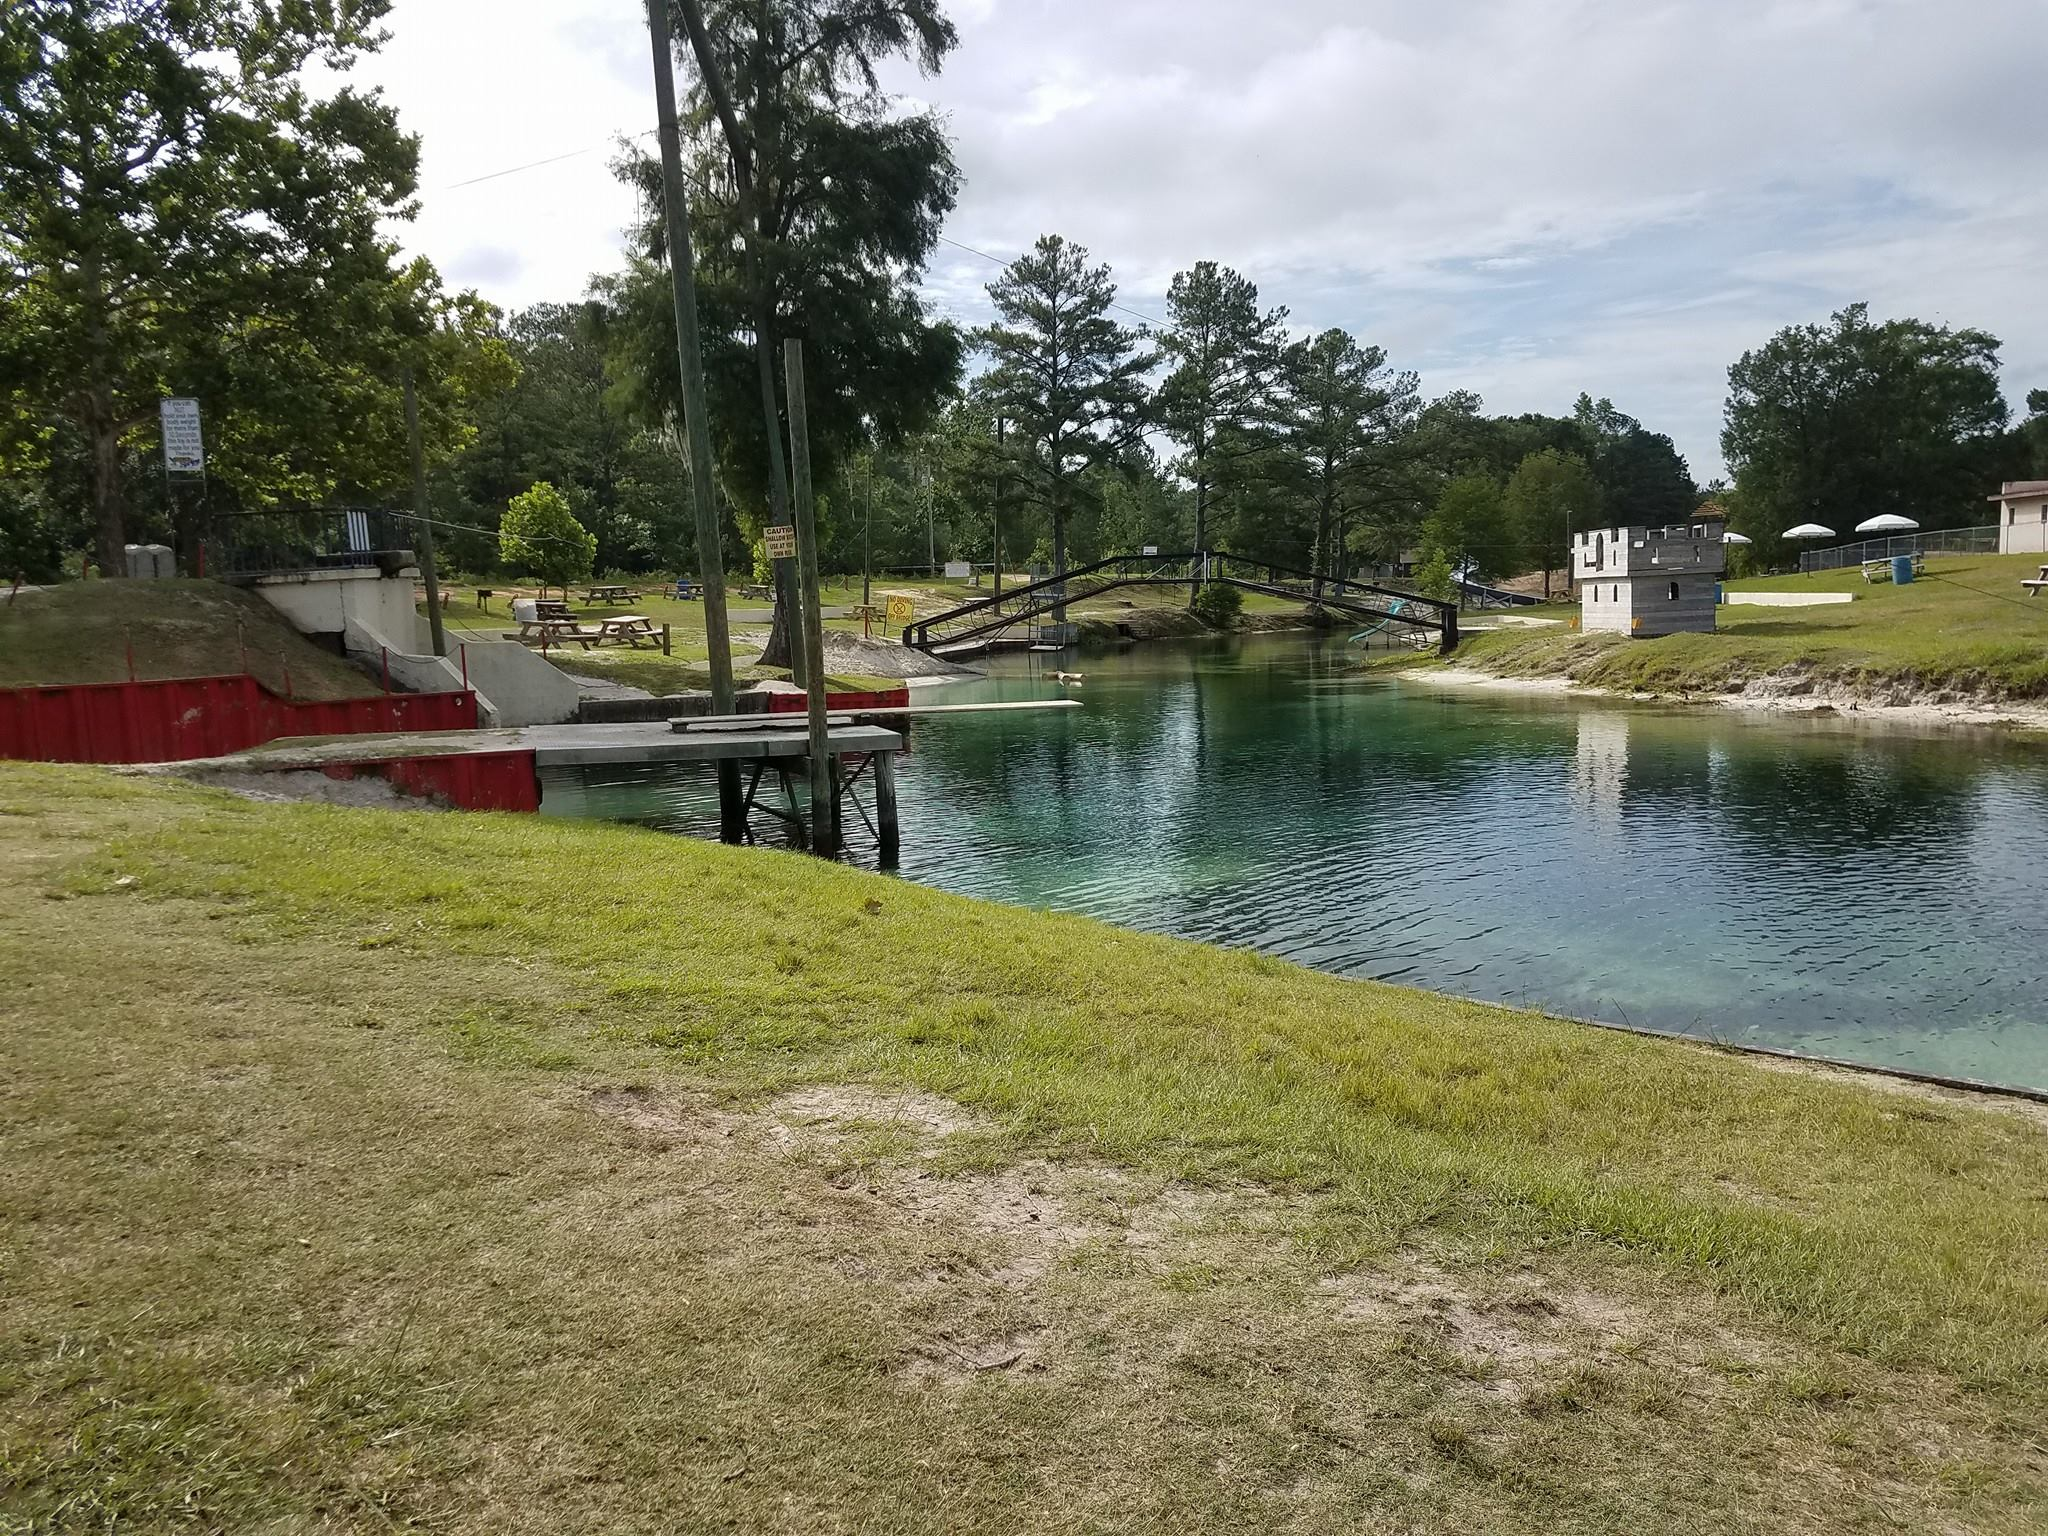 Florida Springs with Amenities for RV Camping - Florida